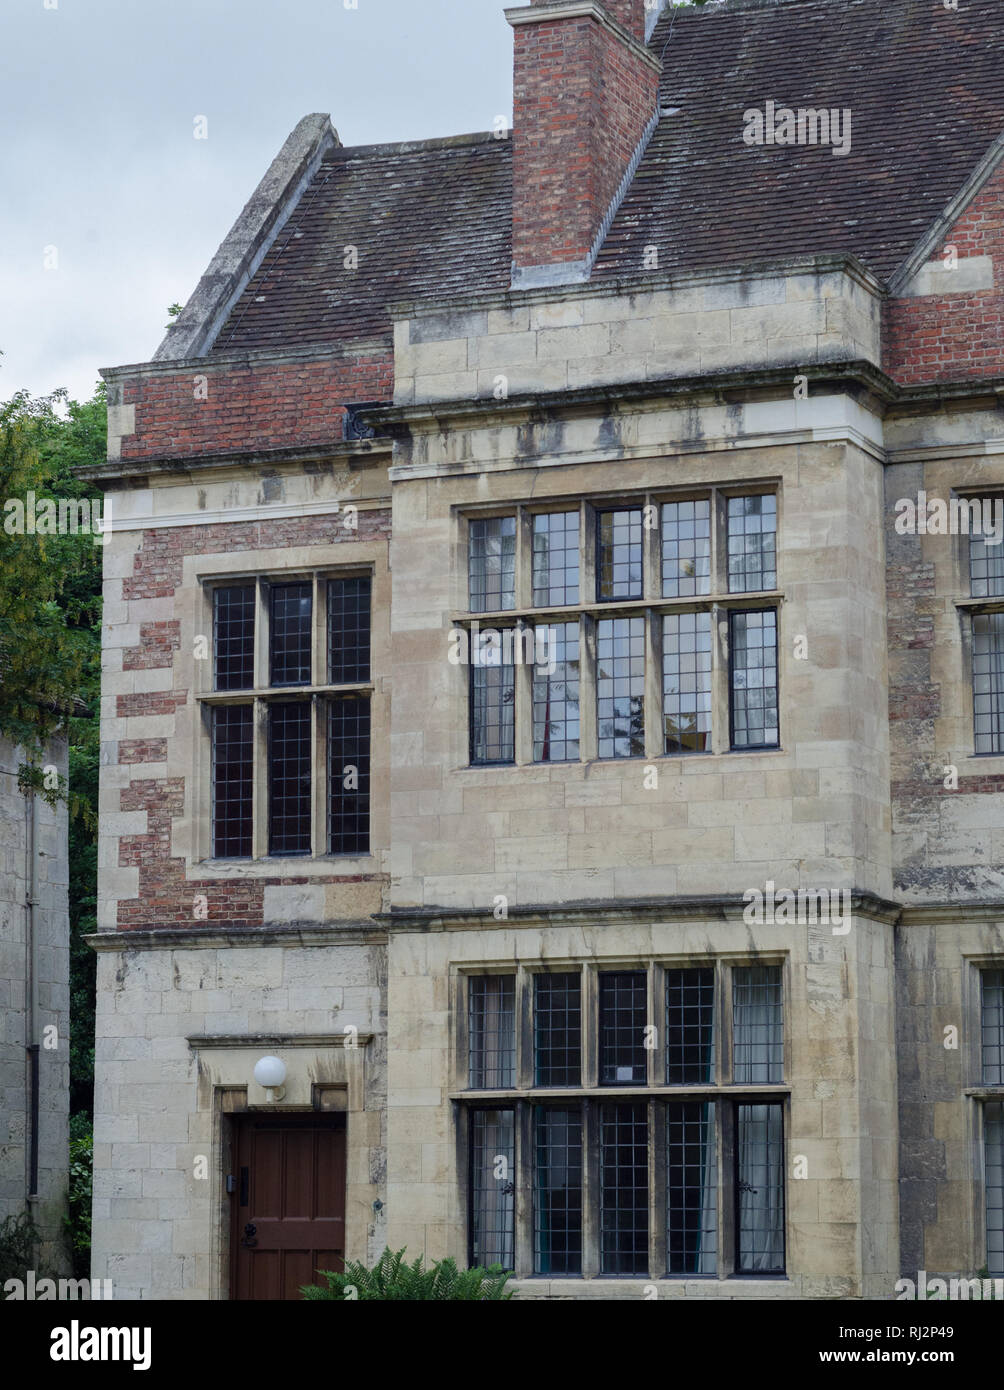 The Department of Archaeology across from Kings Manor, University of York, York, England. - Stock Image